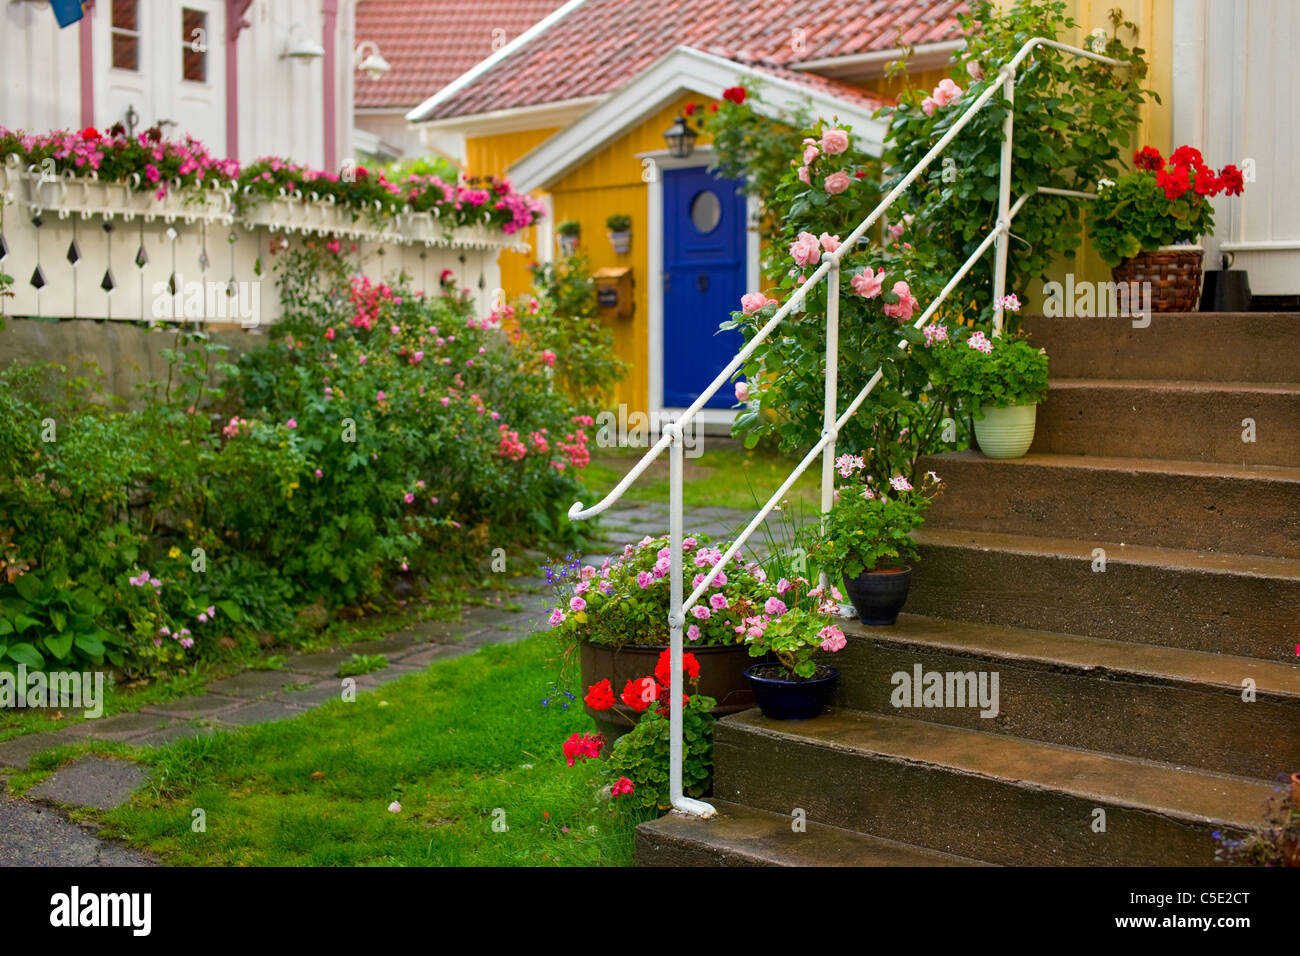 Stairways To The Beautiful Garden With House In The